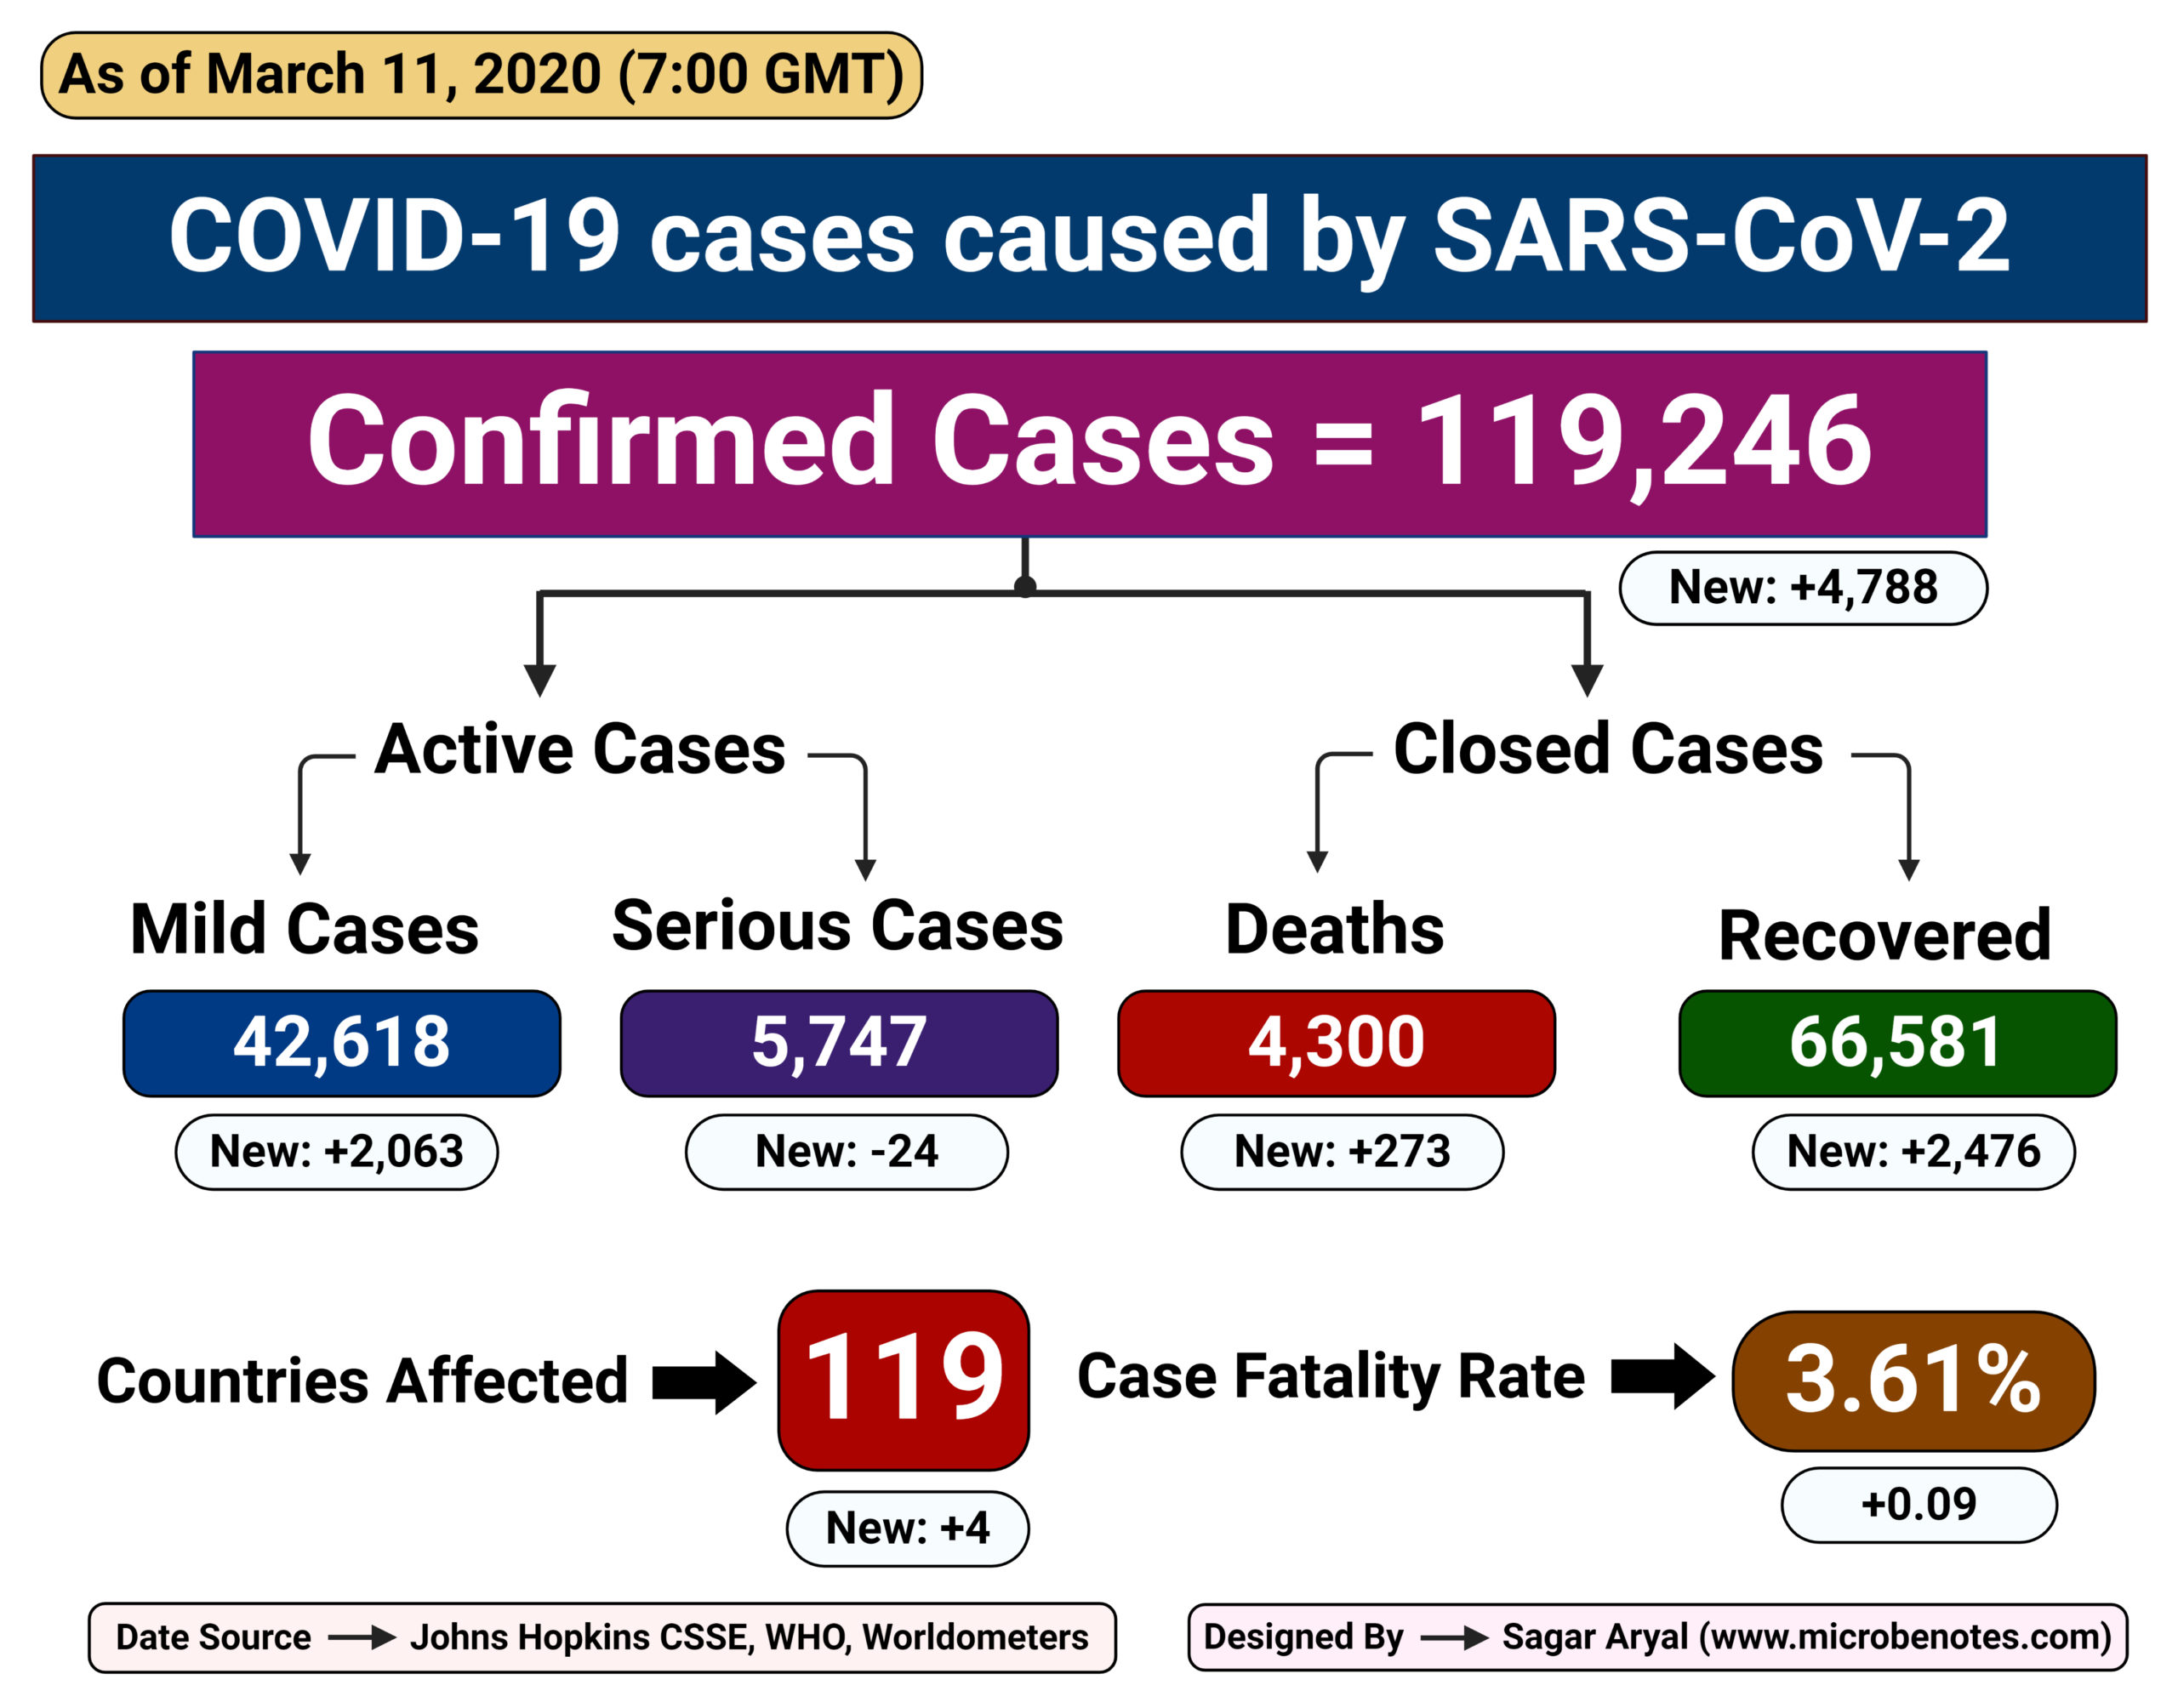 Epidemiology of COVID-19 caused by SARS-CoV-2 as of March 11, 2020